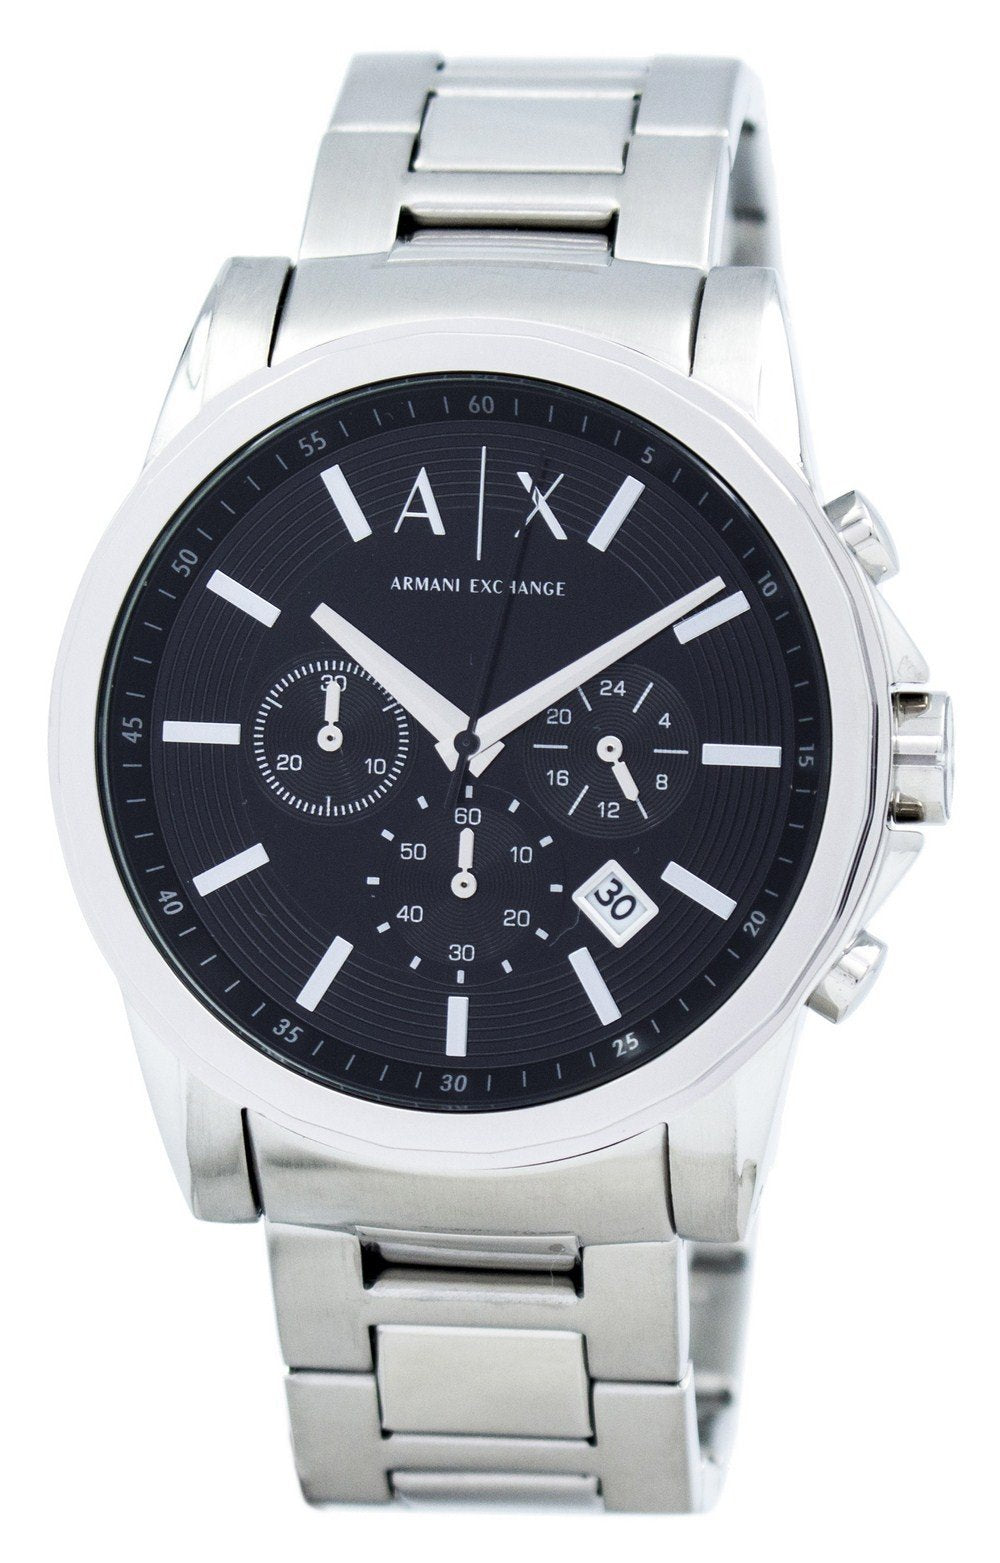 Armani Exchange Chronograph Black Dial AX2084 Men's Watch, best prices, cheapest, discount, new, Cruze Watches